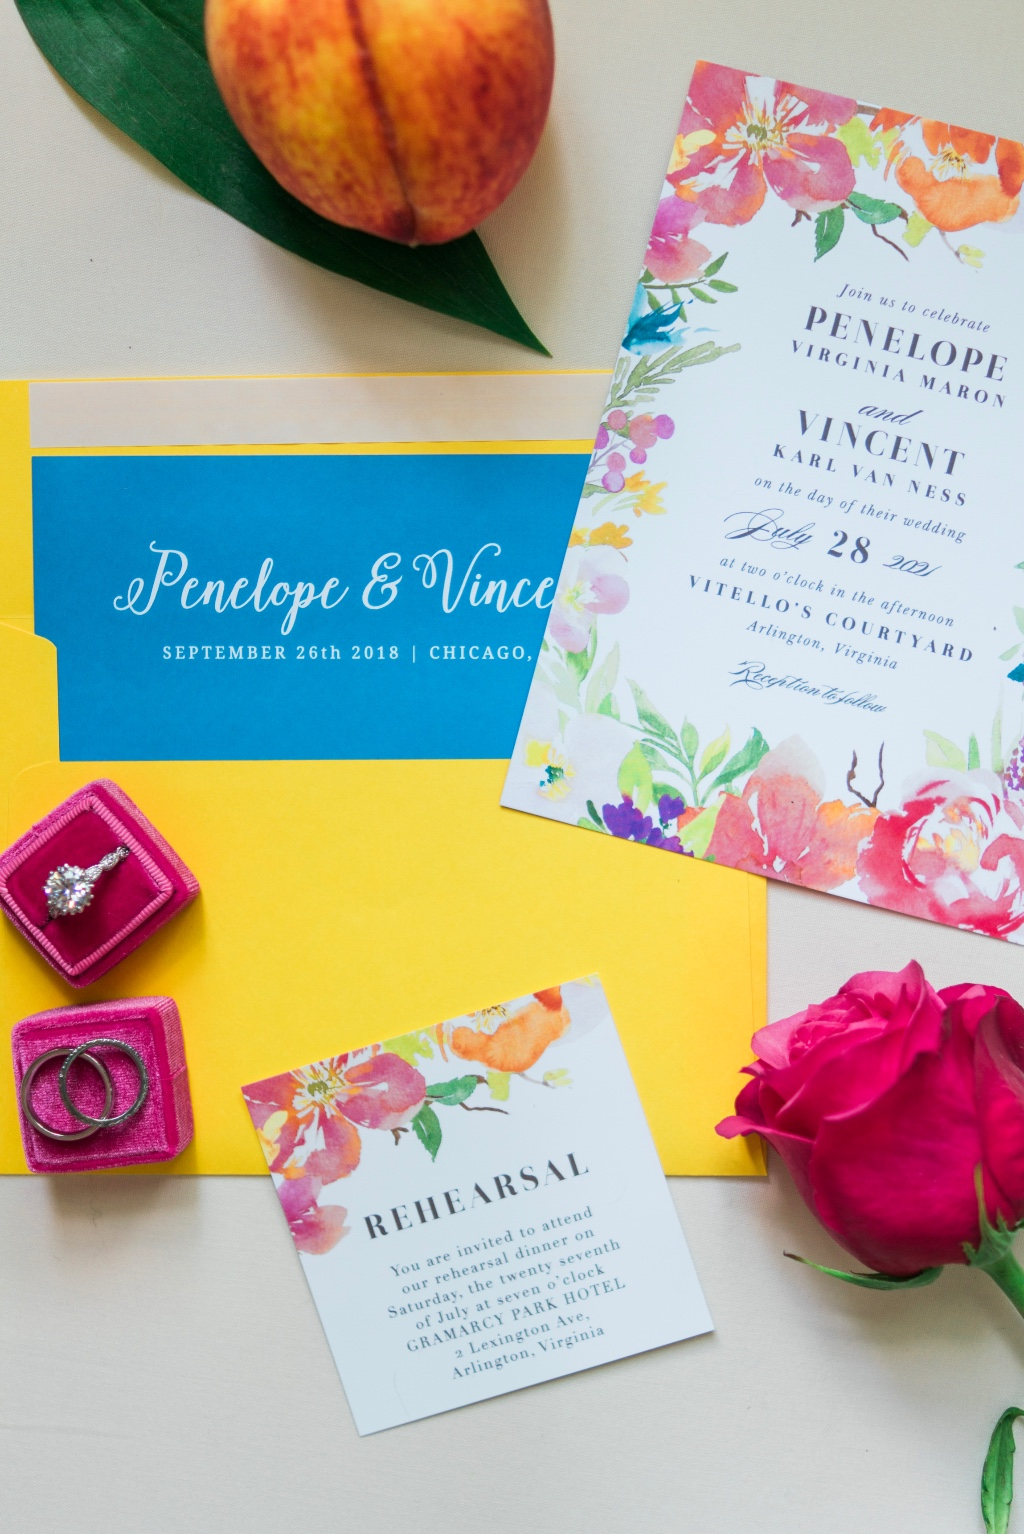 Be bold as a bride with brightly colored floral invitations and an envelope to match.